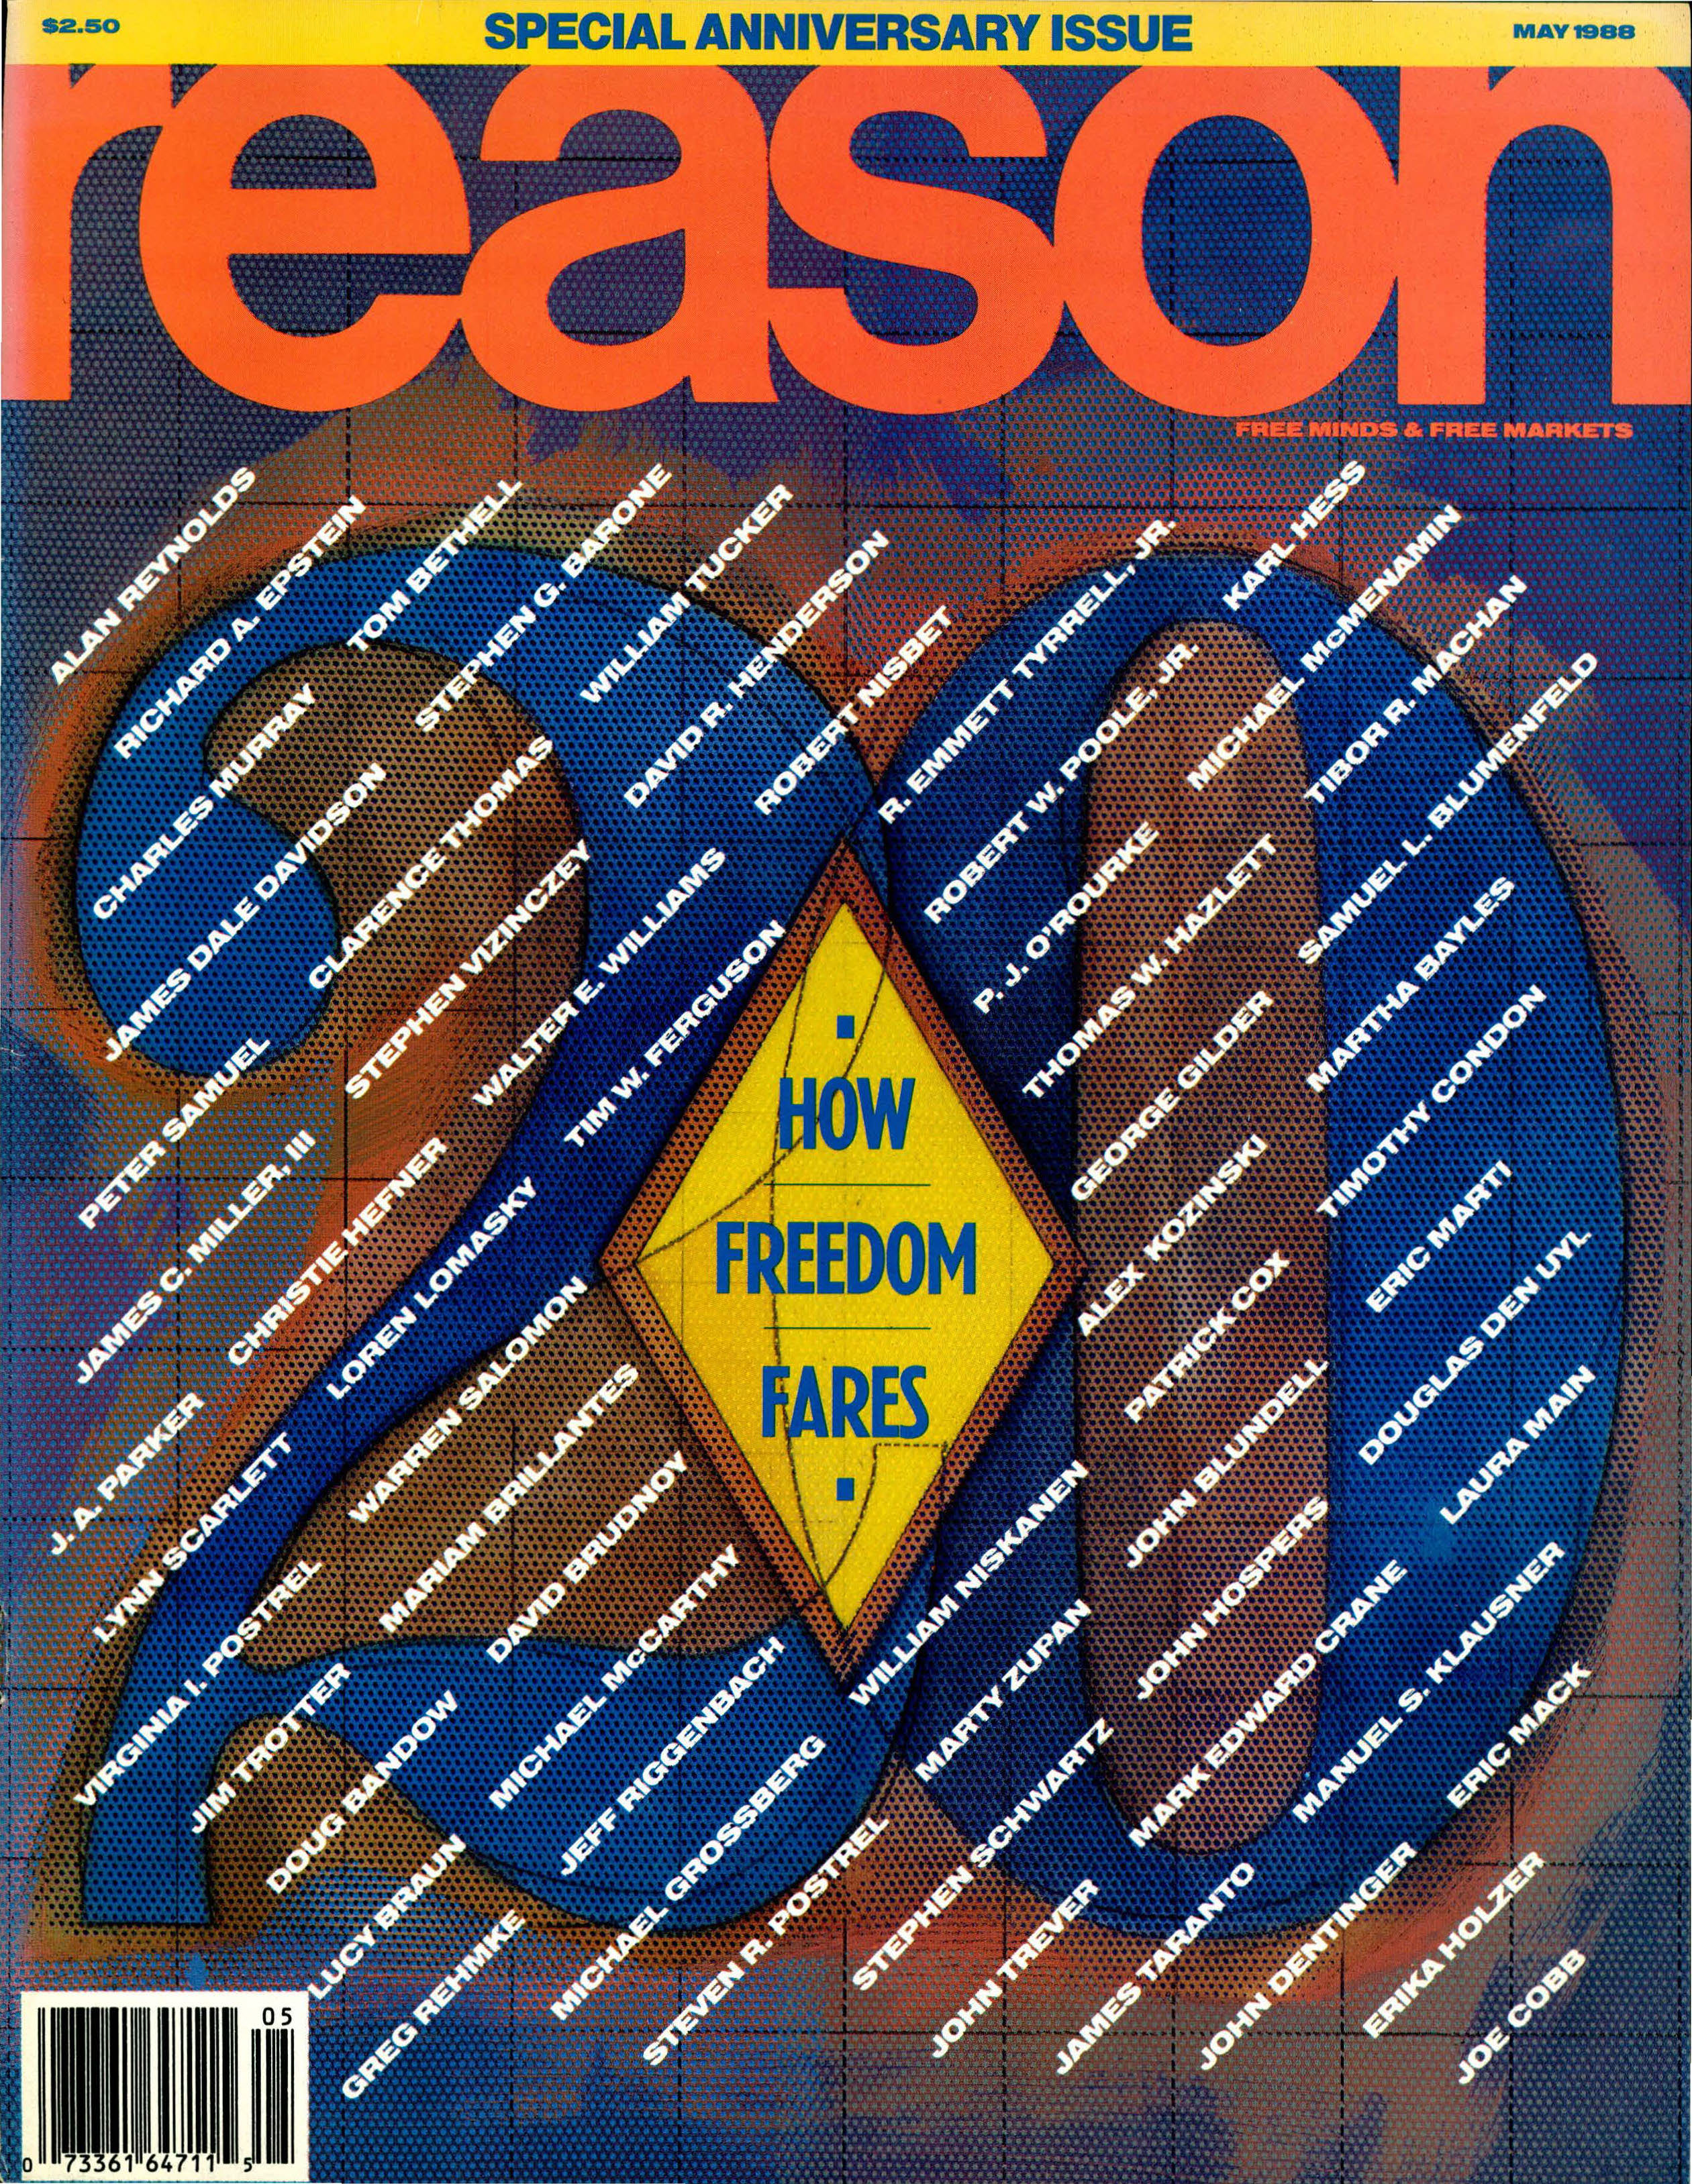 Reason Magazine, May 1988 cover image